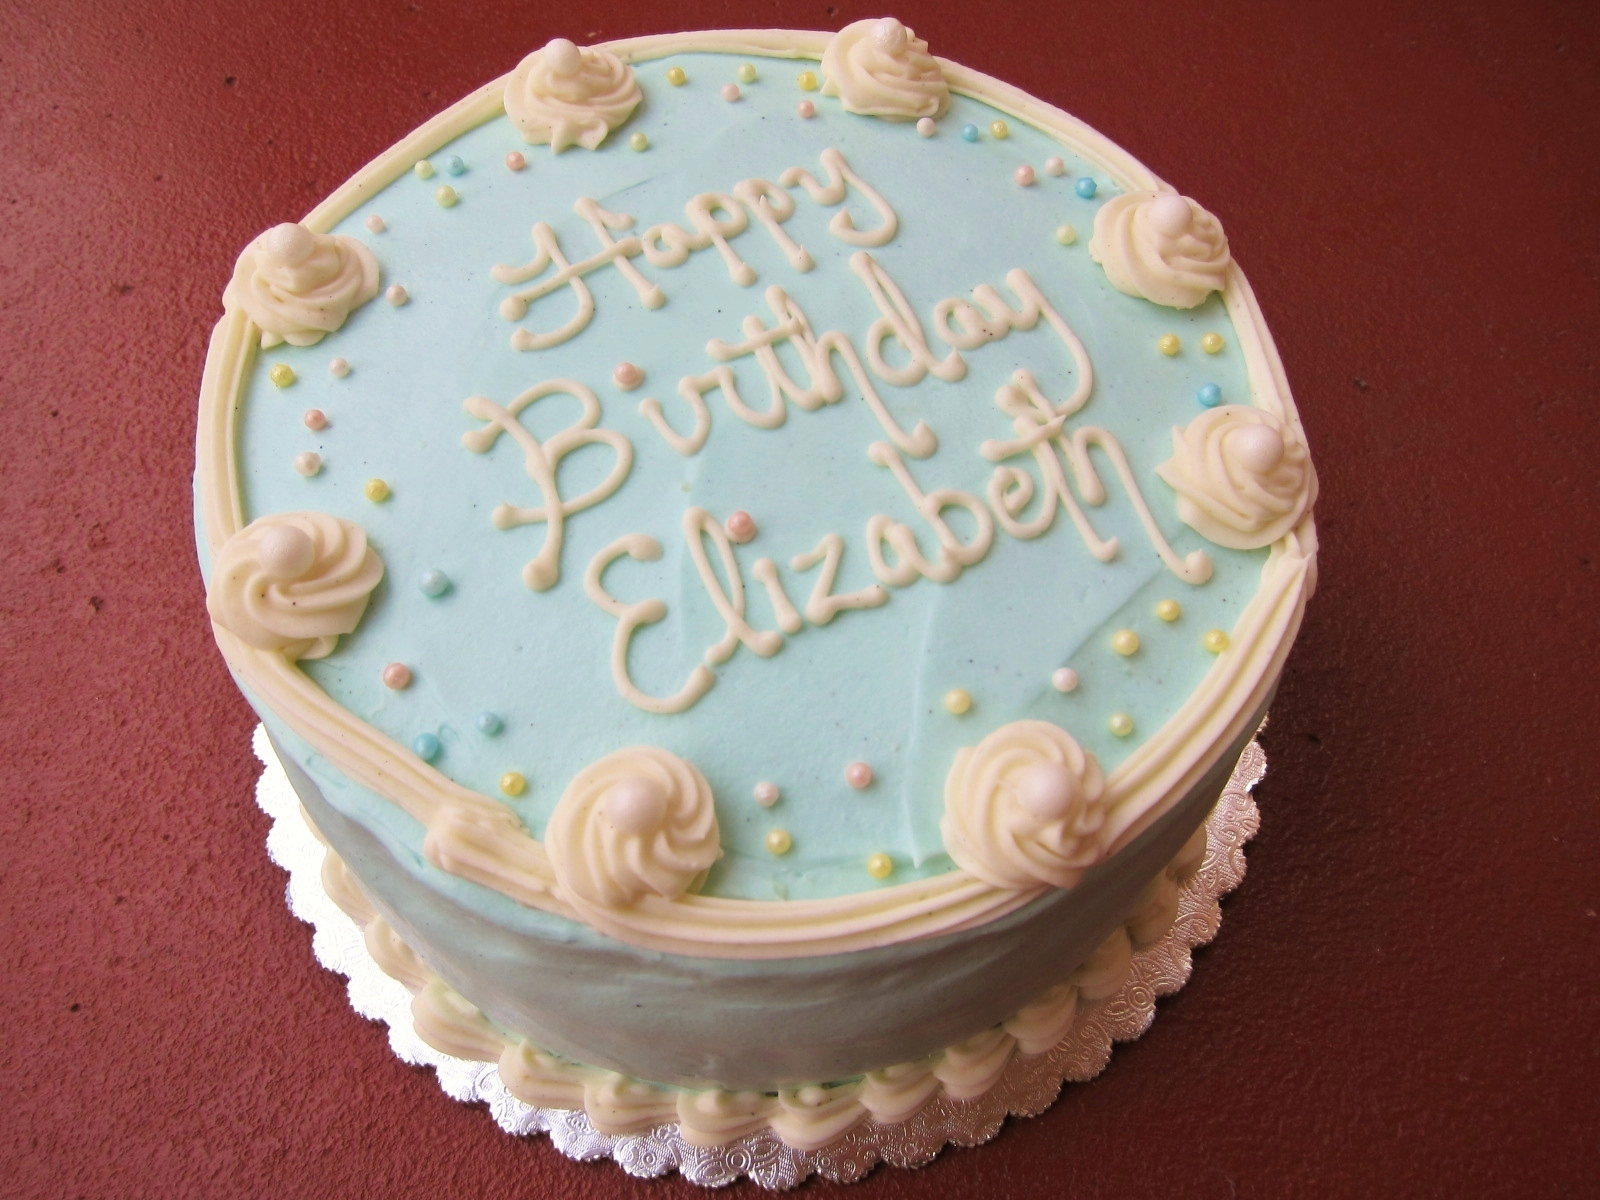 Birthday Cake Queen Elizabeth Image Inspiration of Cake and